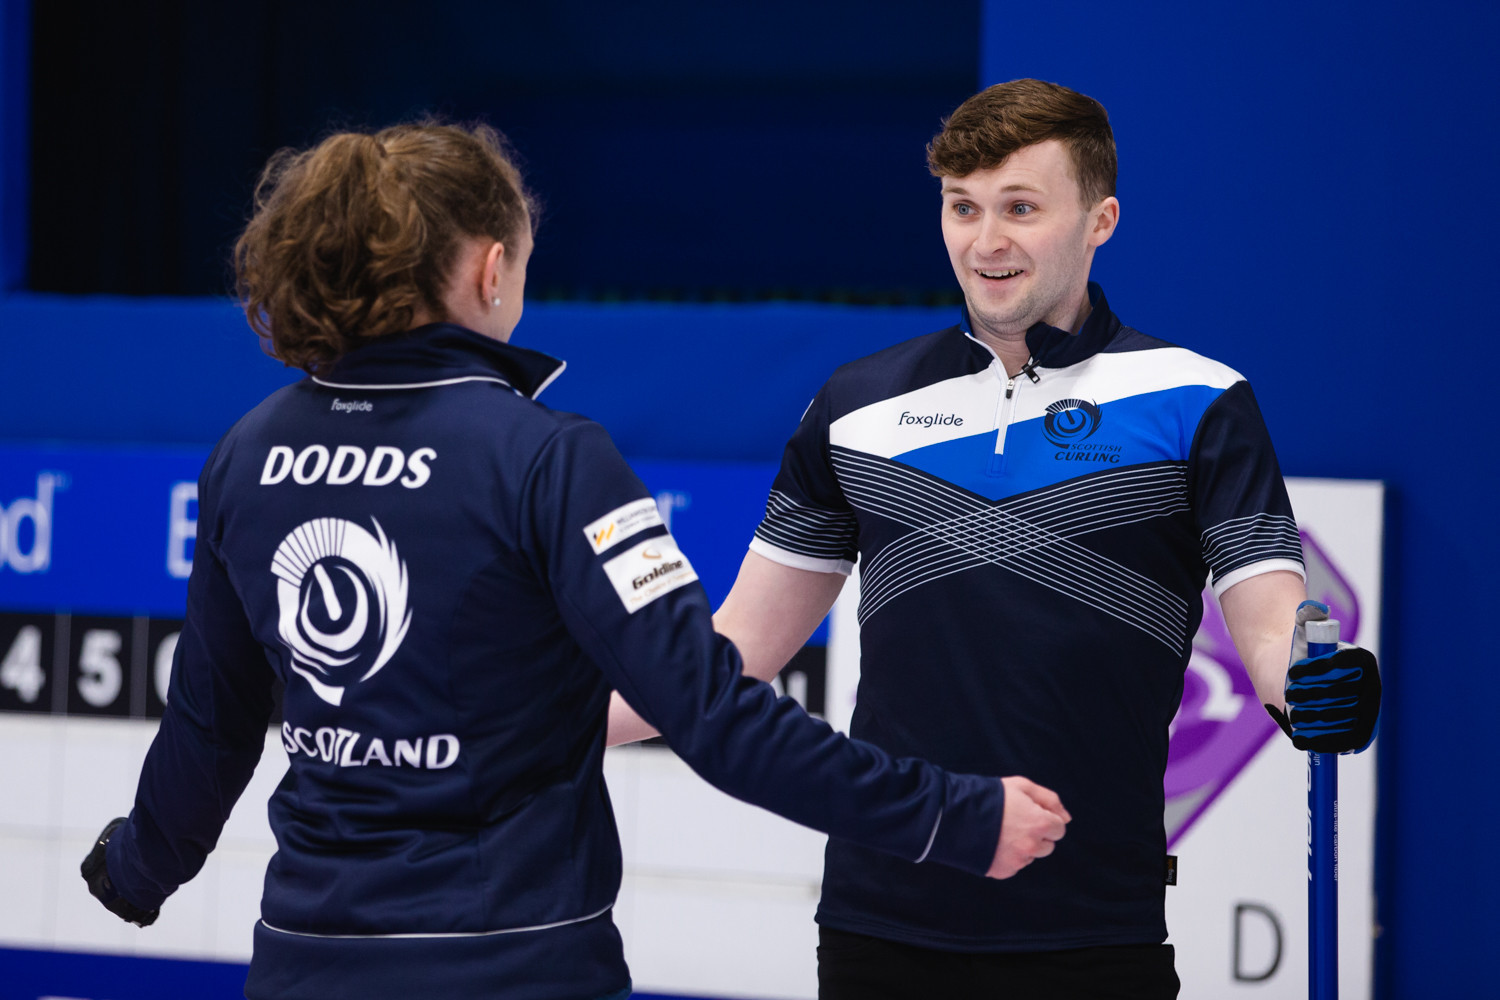 Scotland win gold on home ice at World Mixed Doubles Curling Championship